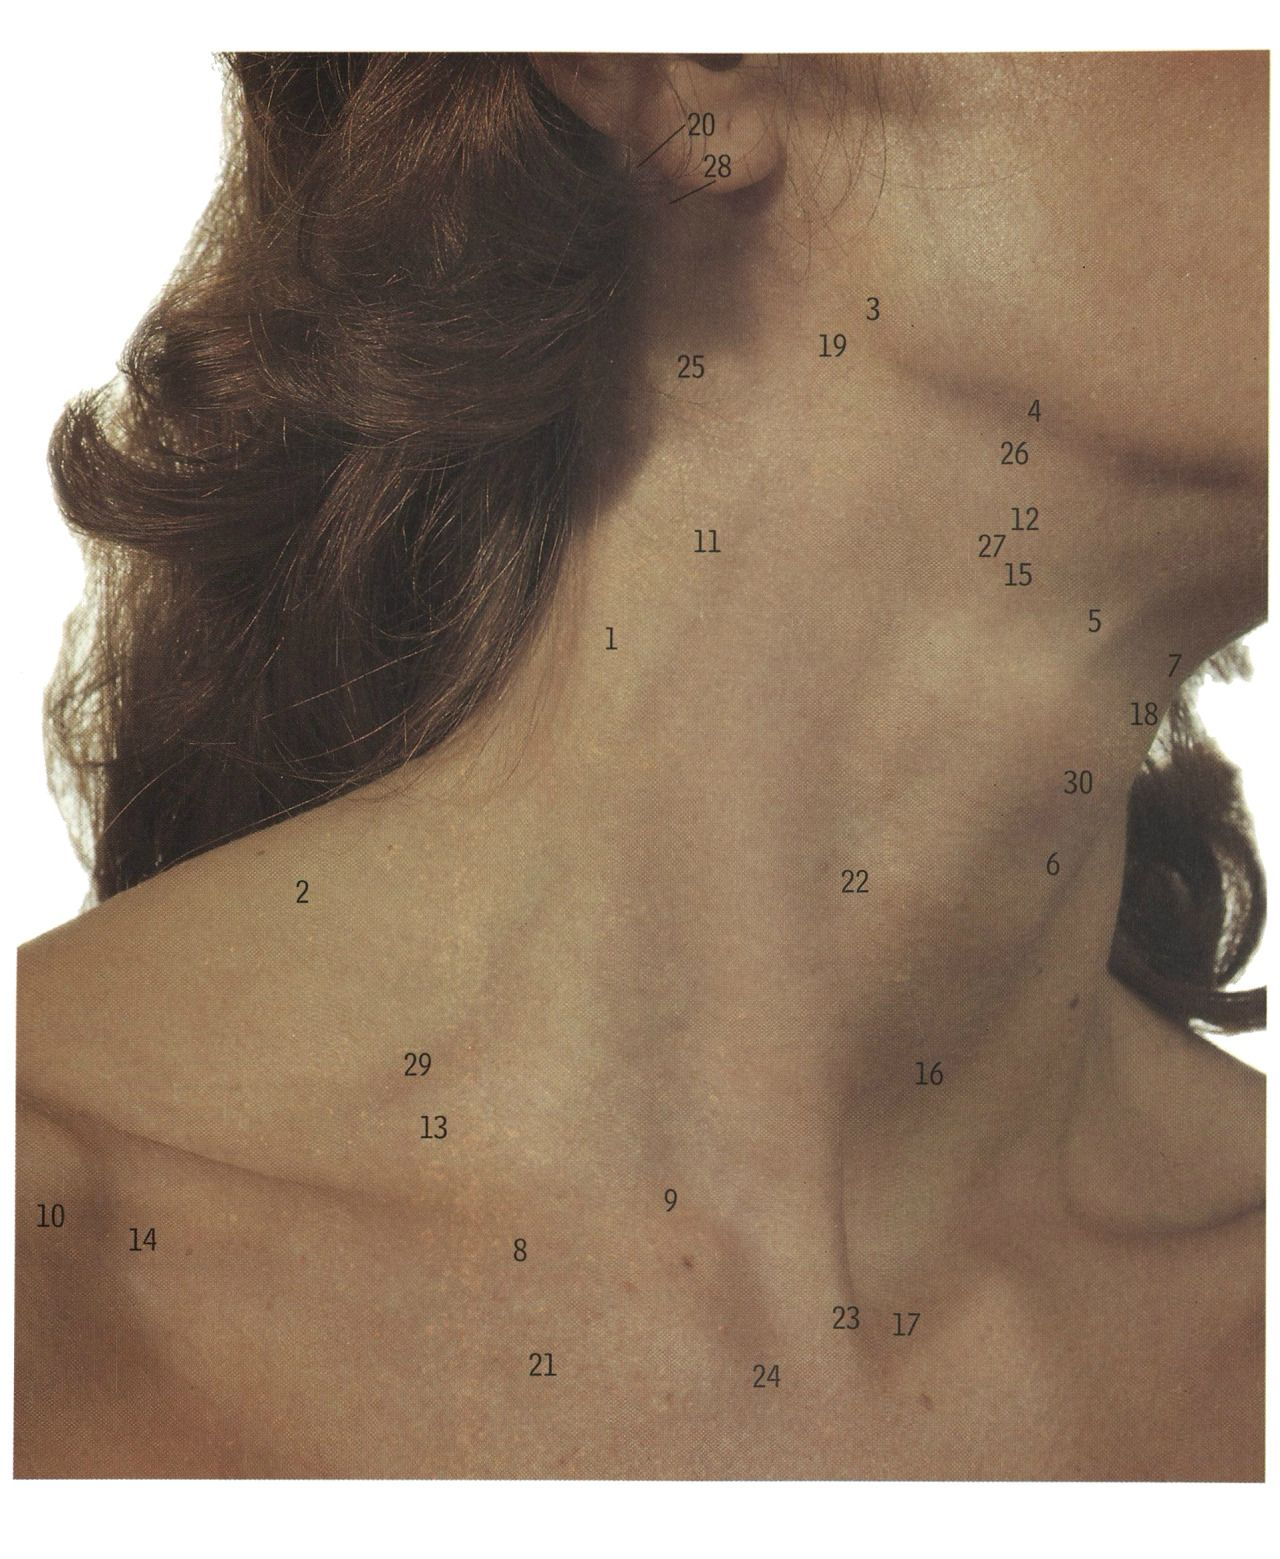 autosafari: The exposed neck: from the accessory nerve (emerging) to ...